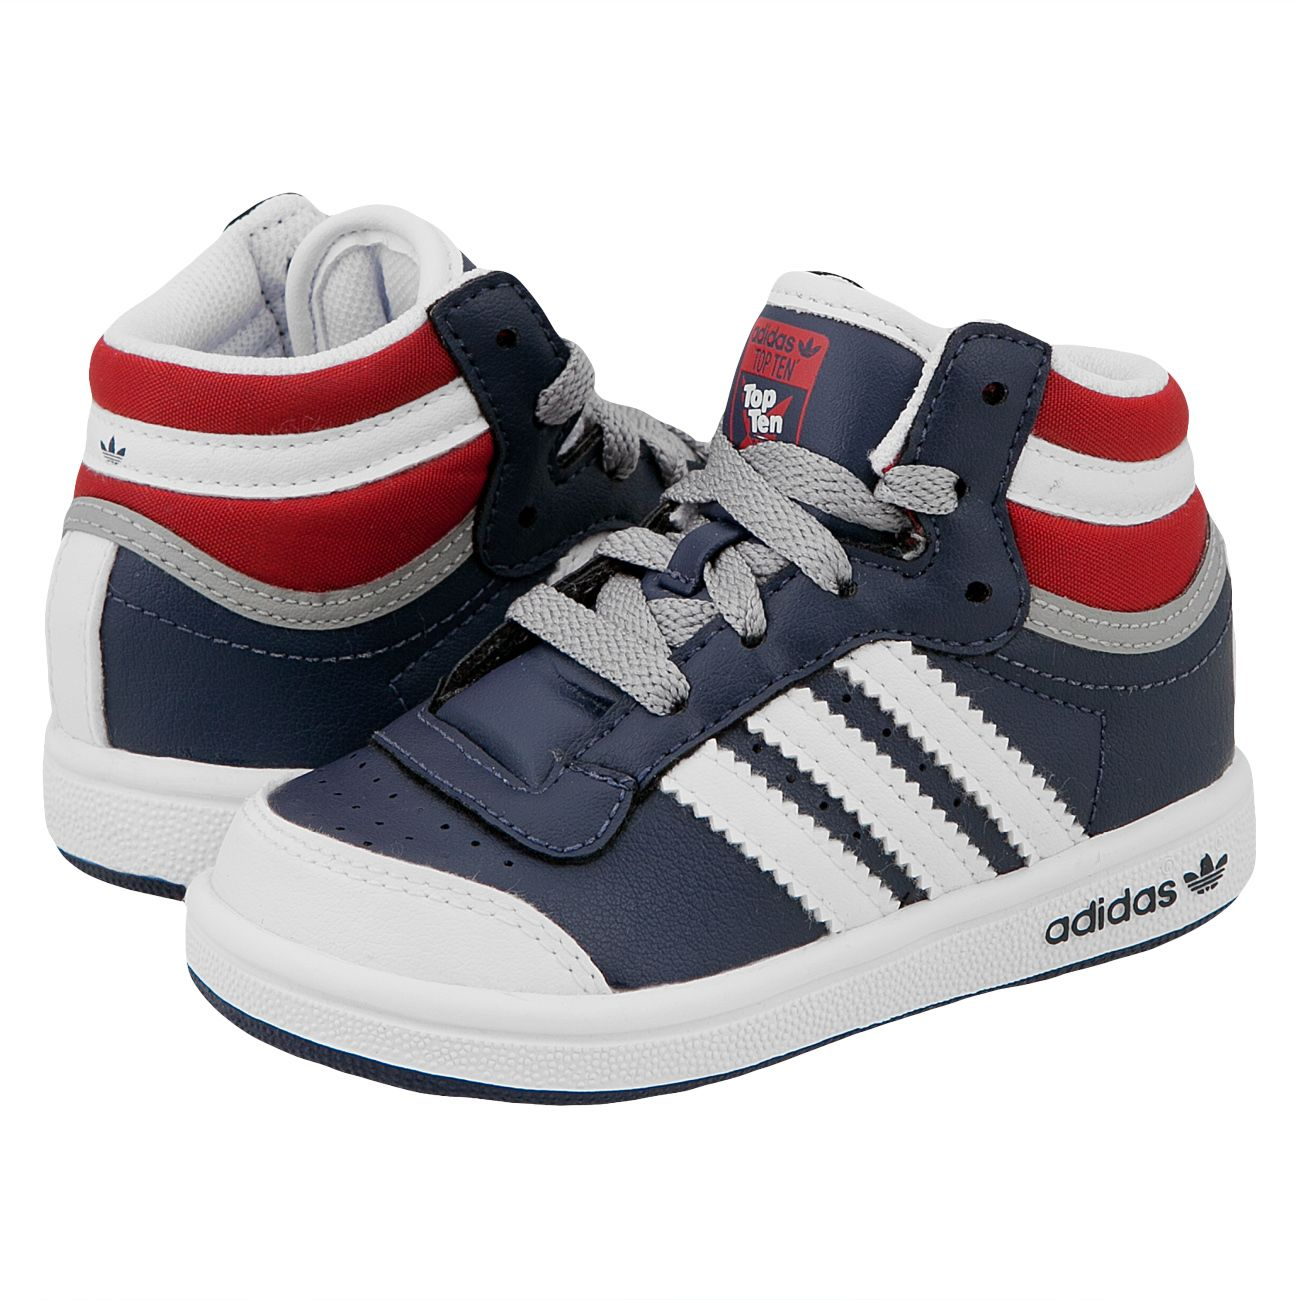 size 40 90f4c a487c Adidas Top Ten Hi I Kids Sneakers Navy ColRed White